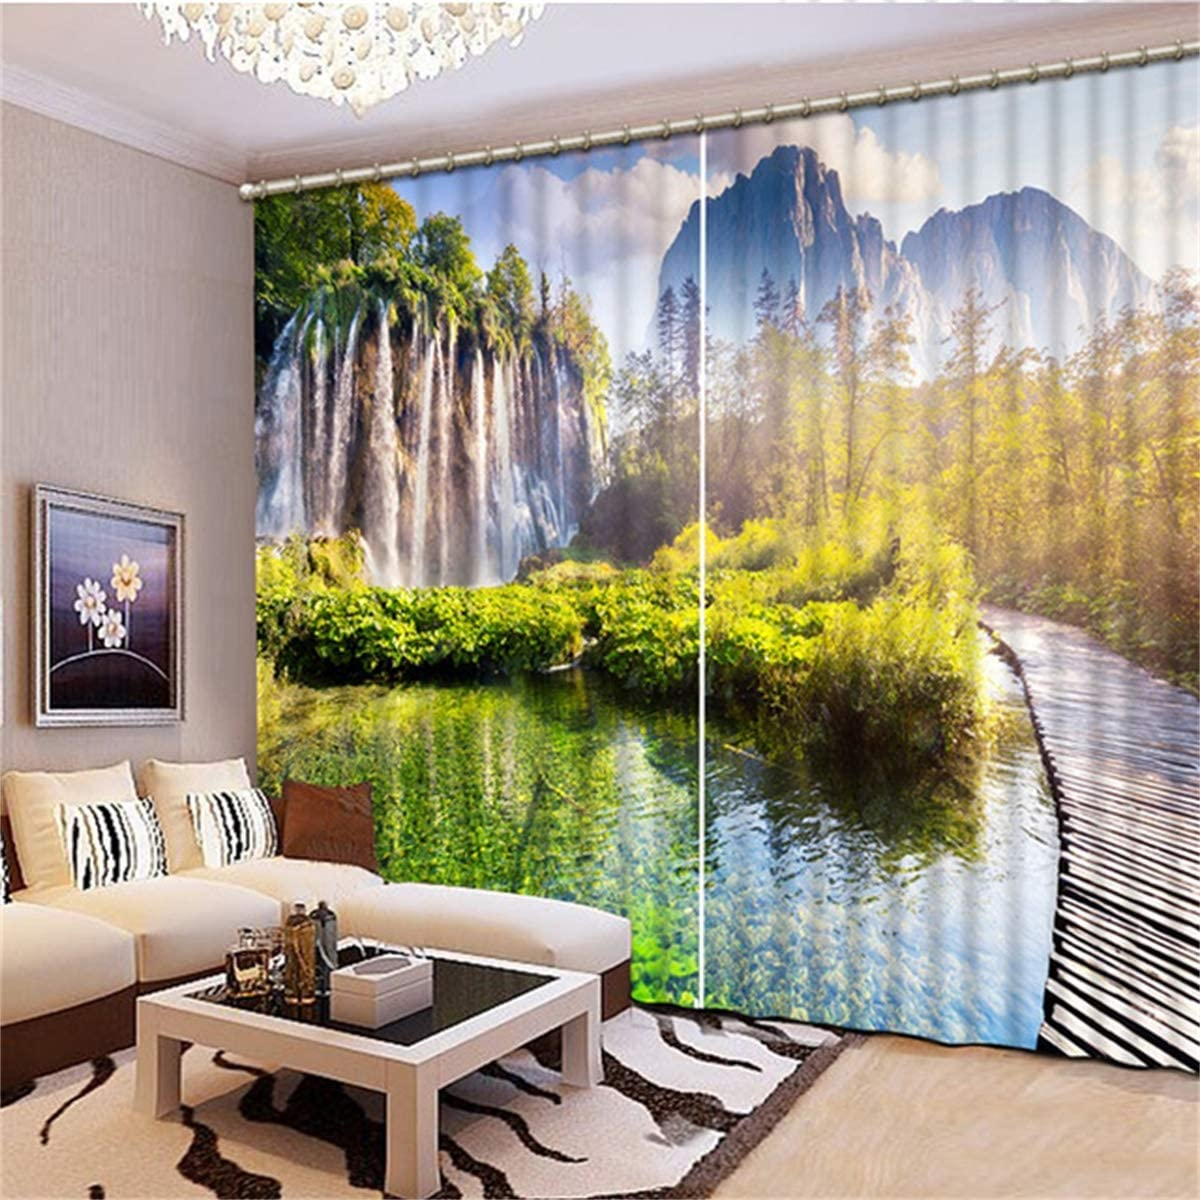 HAOTTP 3D Curtain Shading Living Room Bedroom Window For Living Room Size Balcony W200Xh200cm